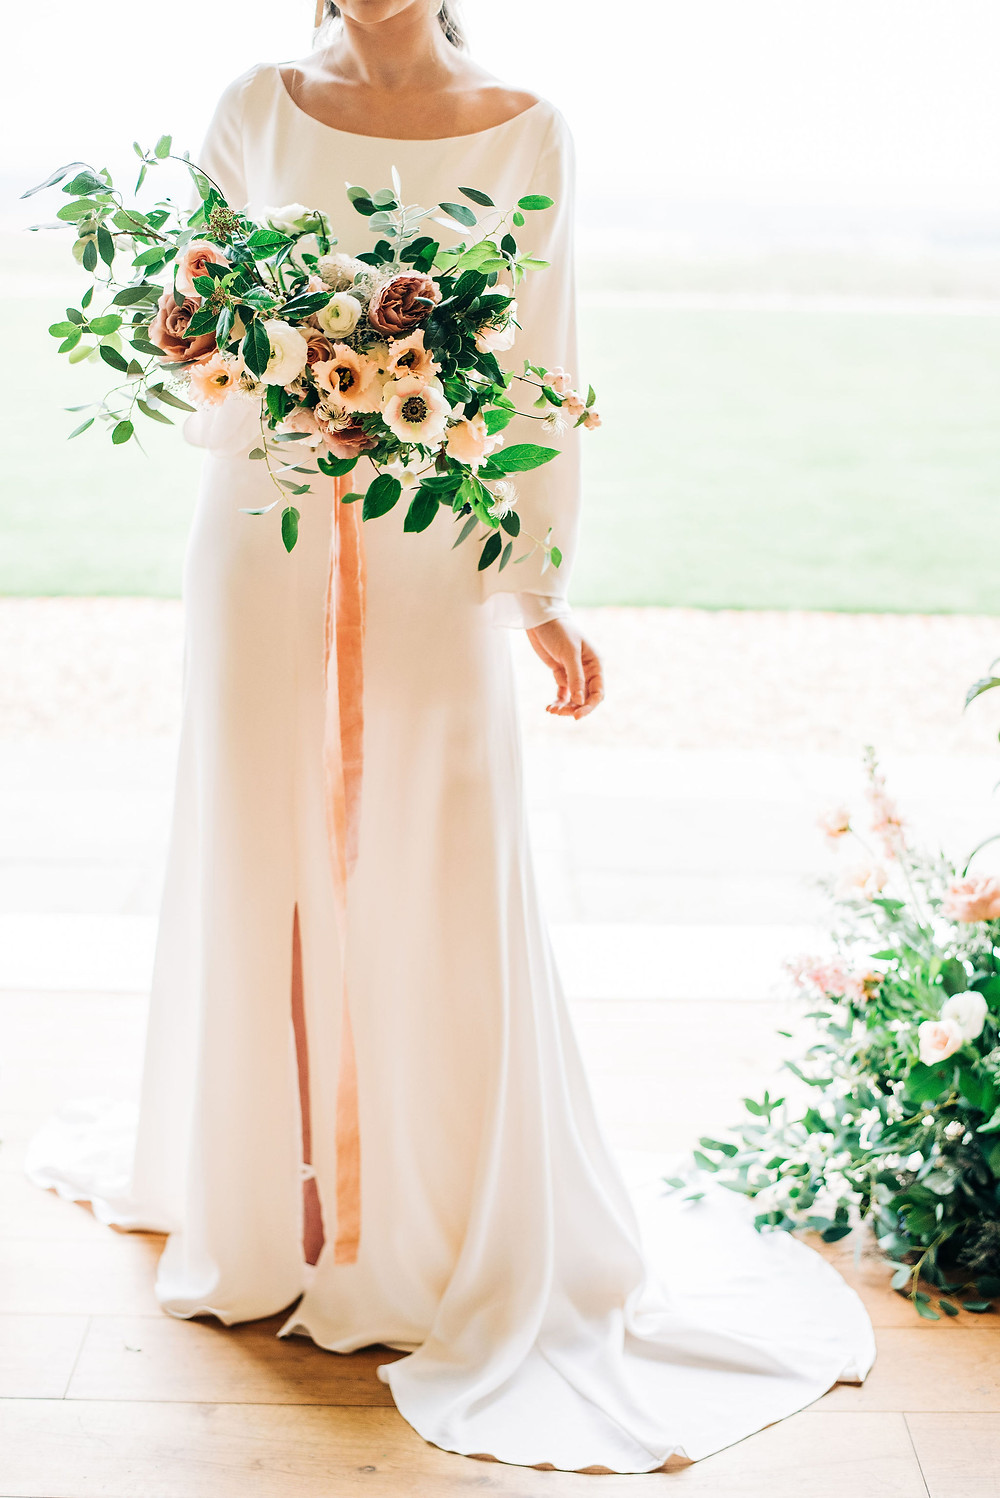 boho wedding dress wiltshire, modern wedding dress wiltshire, ethical wedding dress